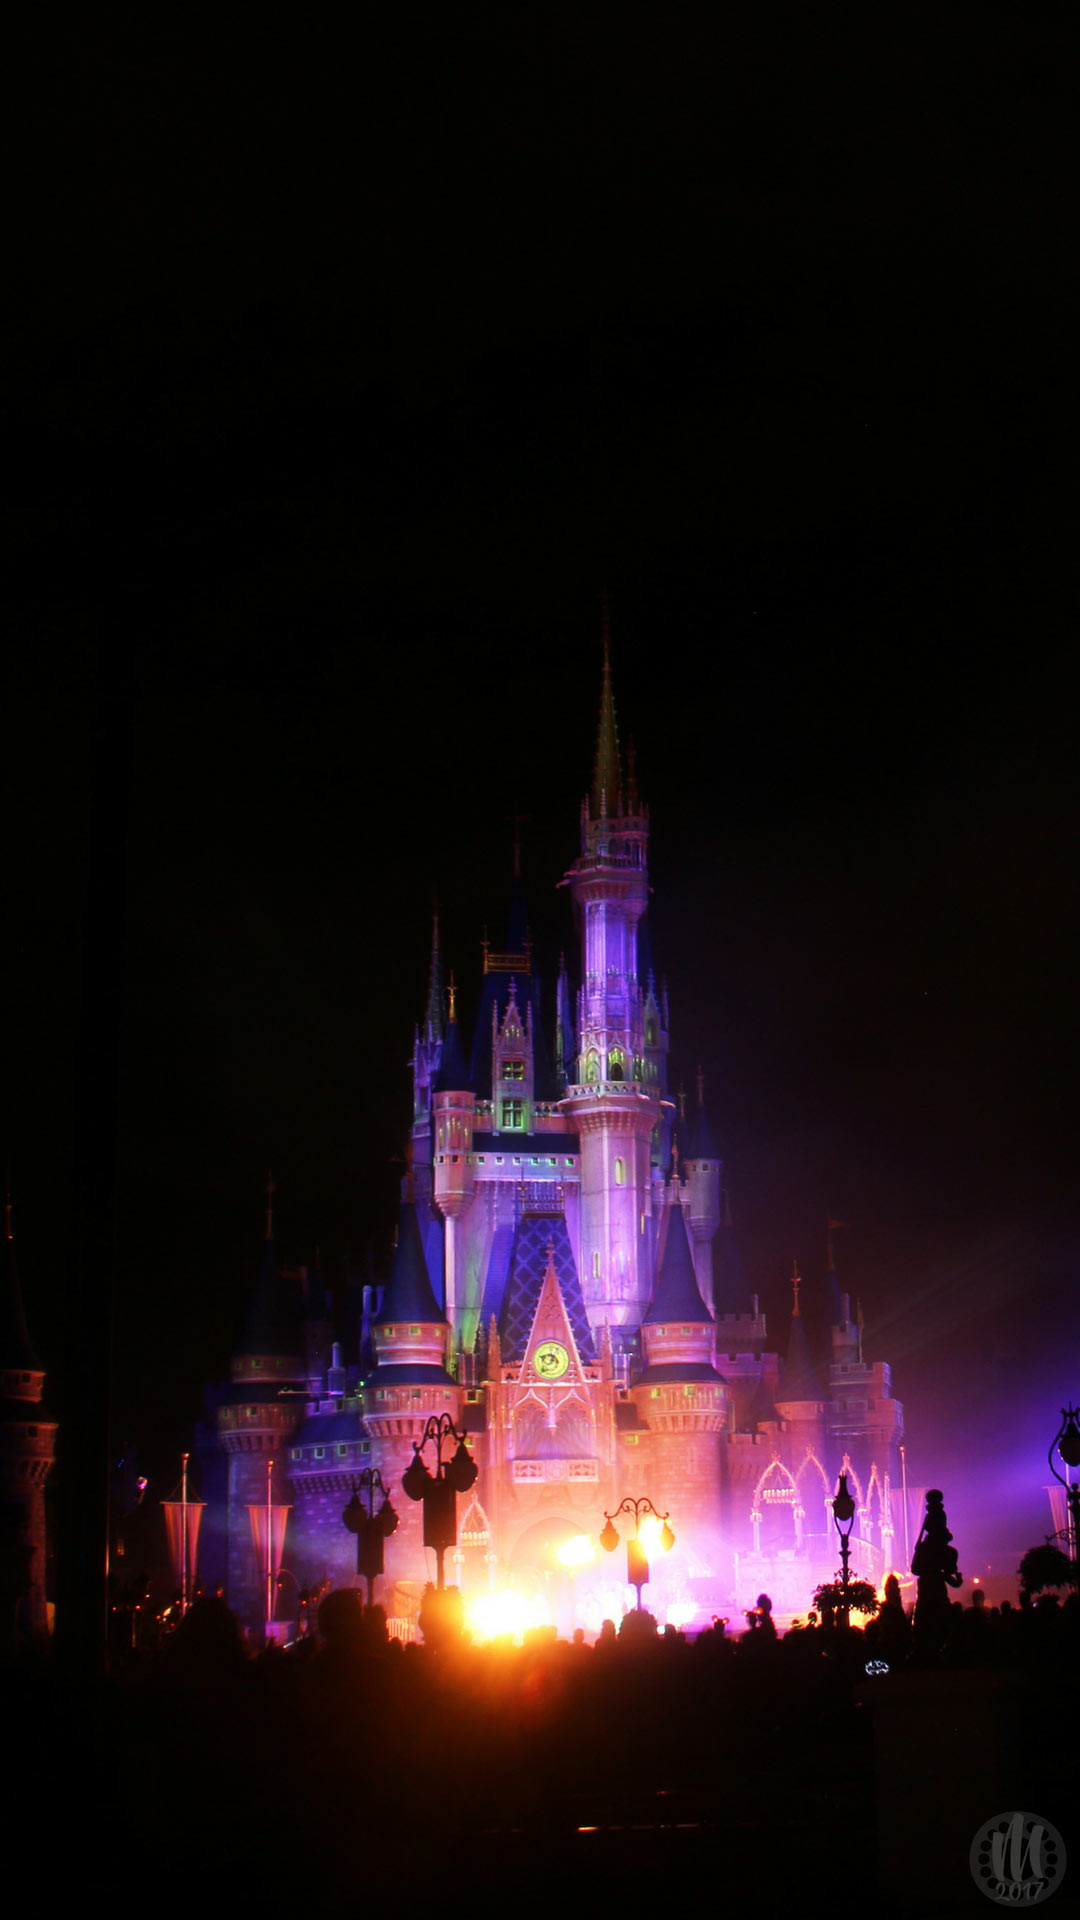 Disney world wallpapers 56 images - Disney world wallpaper iphone ...